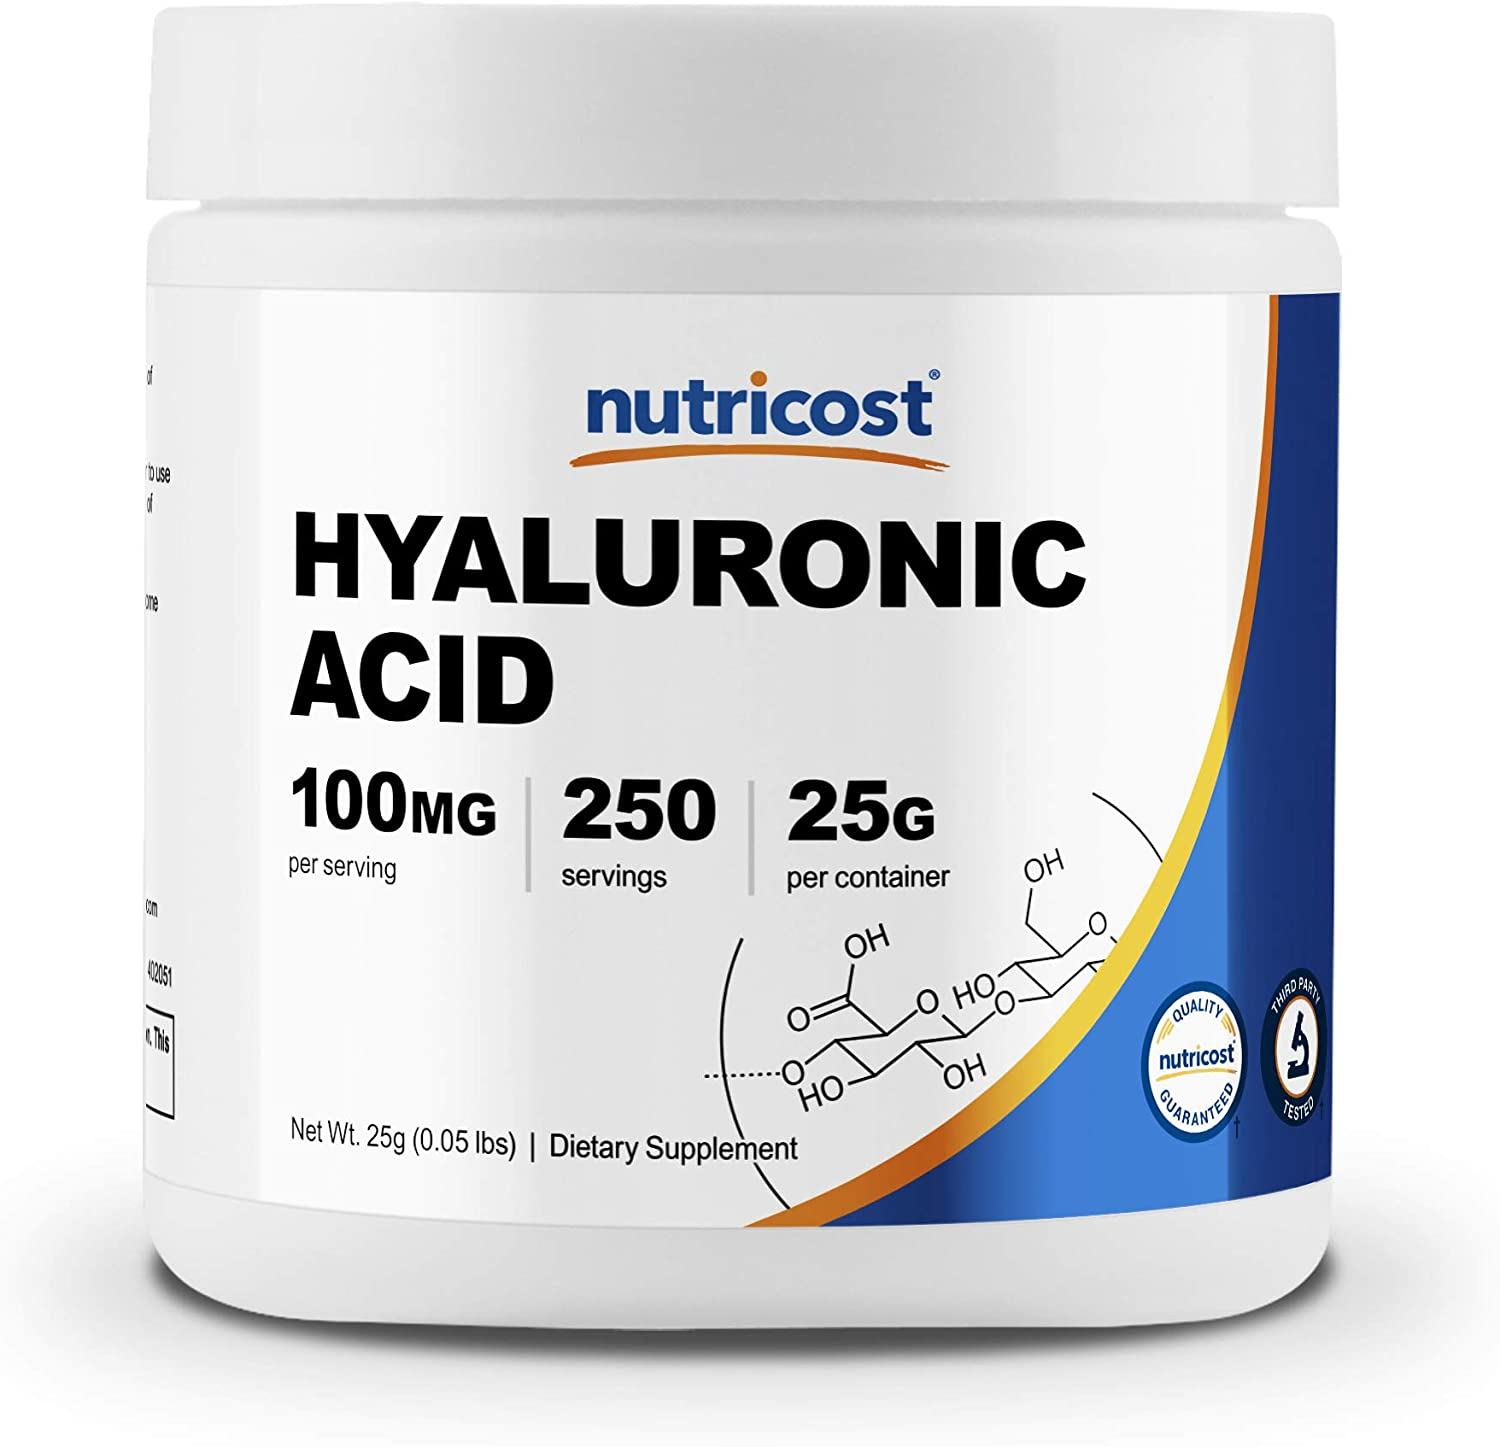 Nutricost Hyaluronic Acid Powder 25 Grams - Non-GMO and Gluten Free